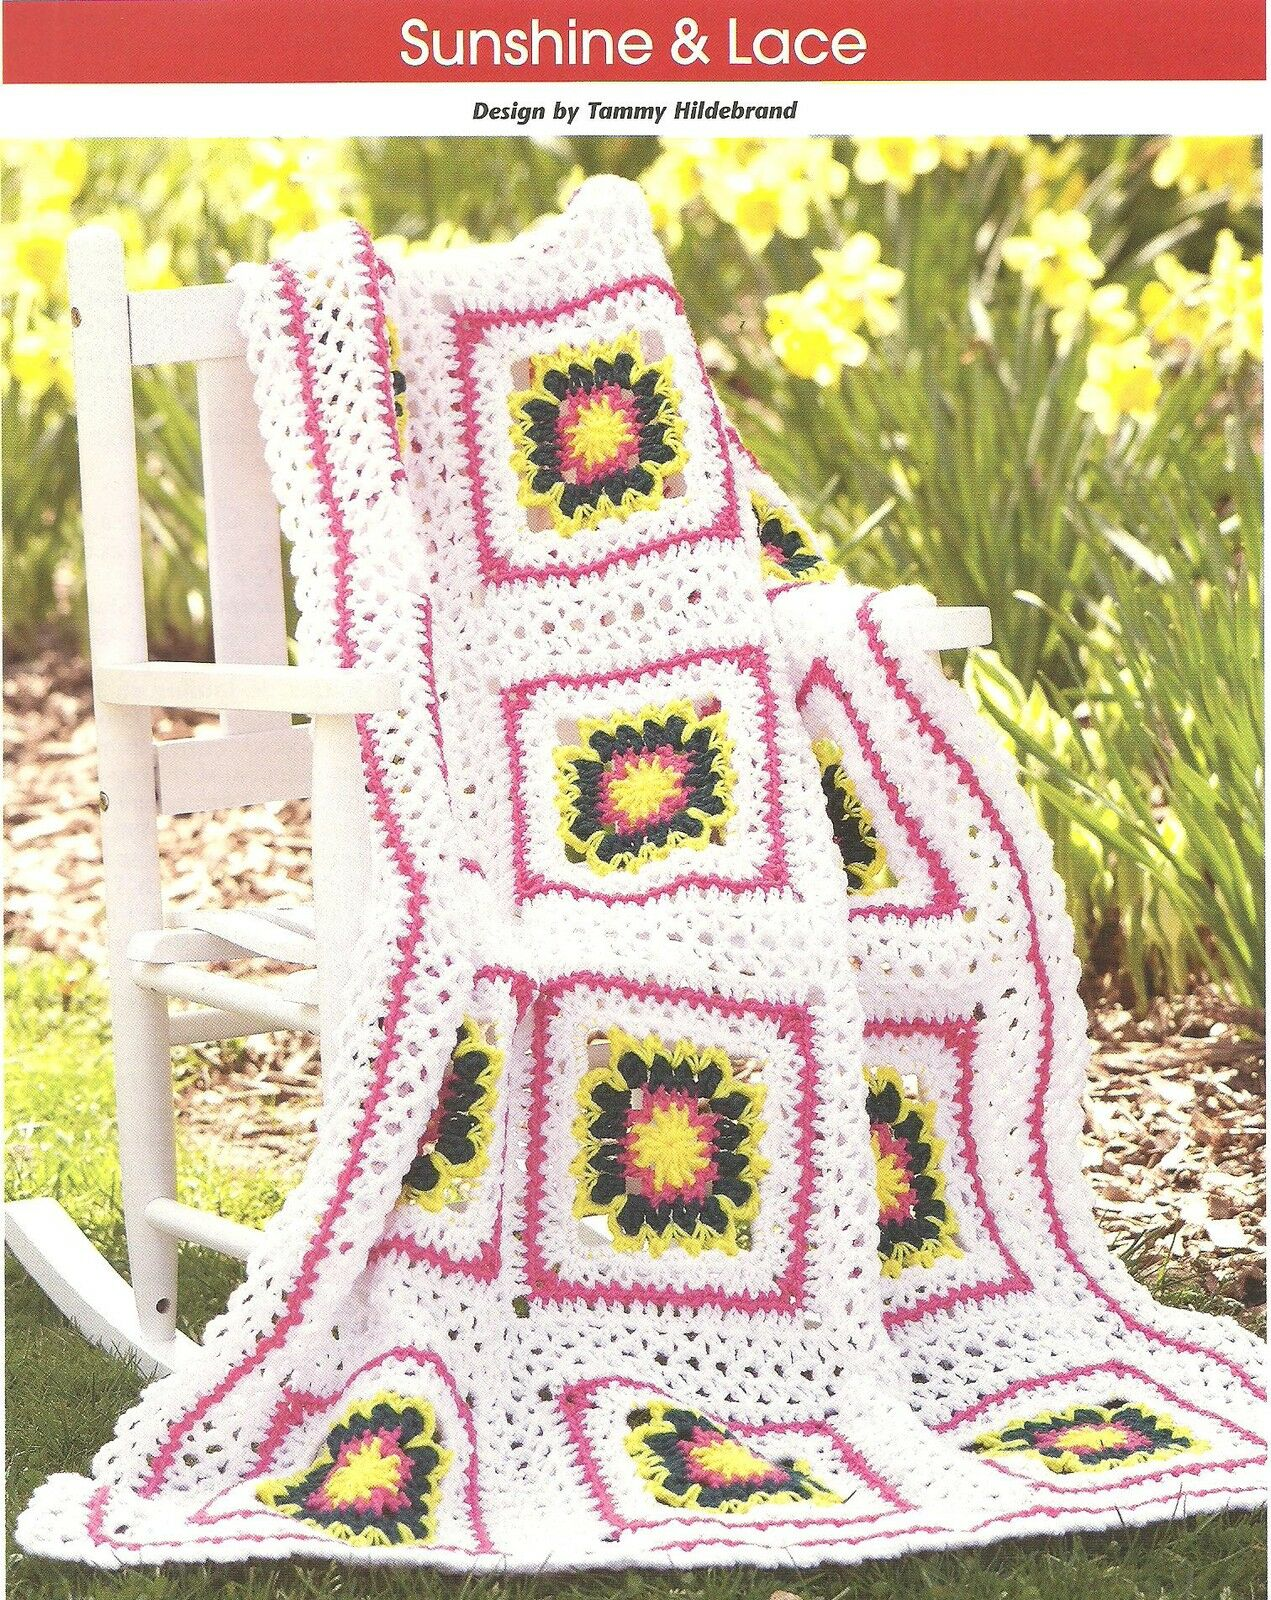 Crochet Patterns With Instructions : Sunshine & Lace Afghan crochet PATTERN INSTRUCTIONS ? $2.99 1 of 1 ...